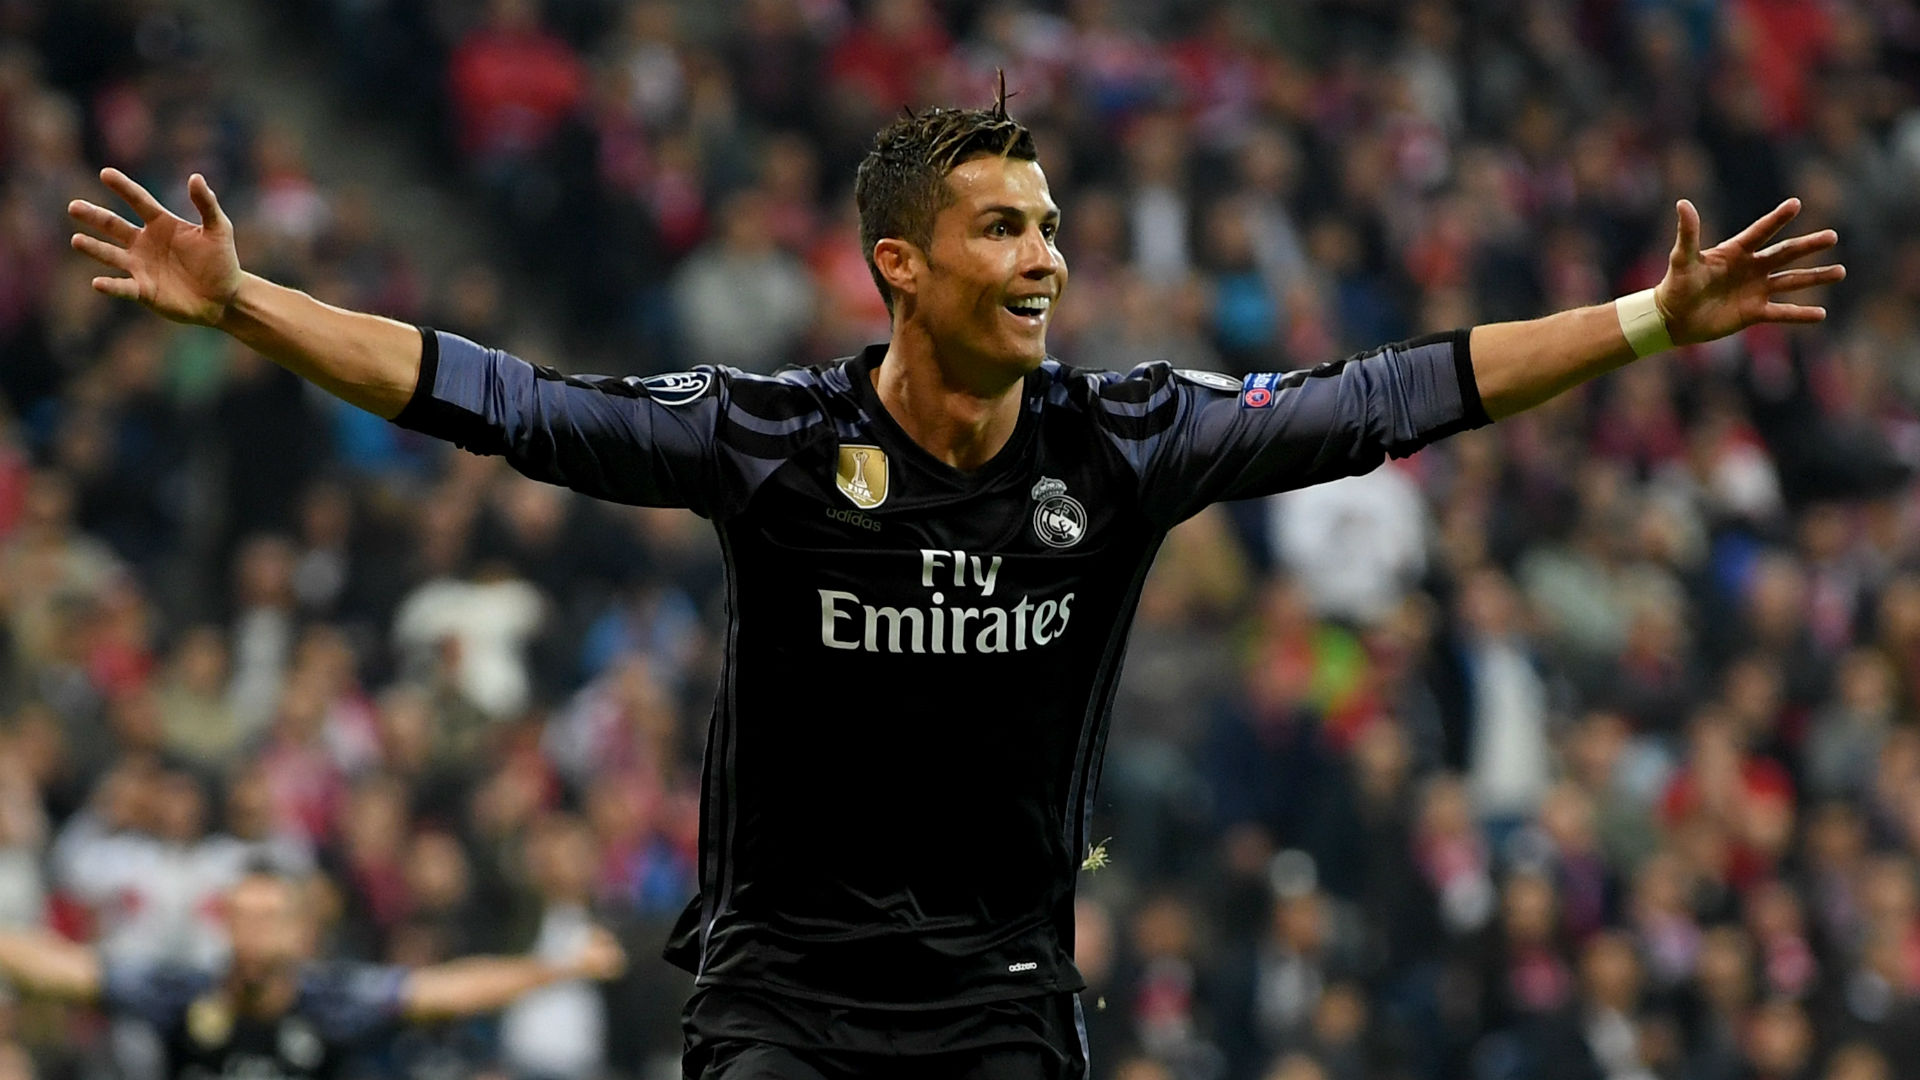 Real Madrid 2-goal hero Ronaldo: Those doubters are in minority